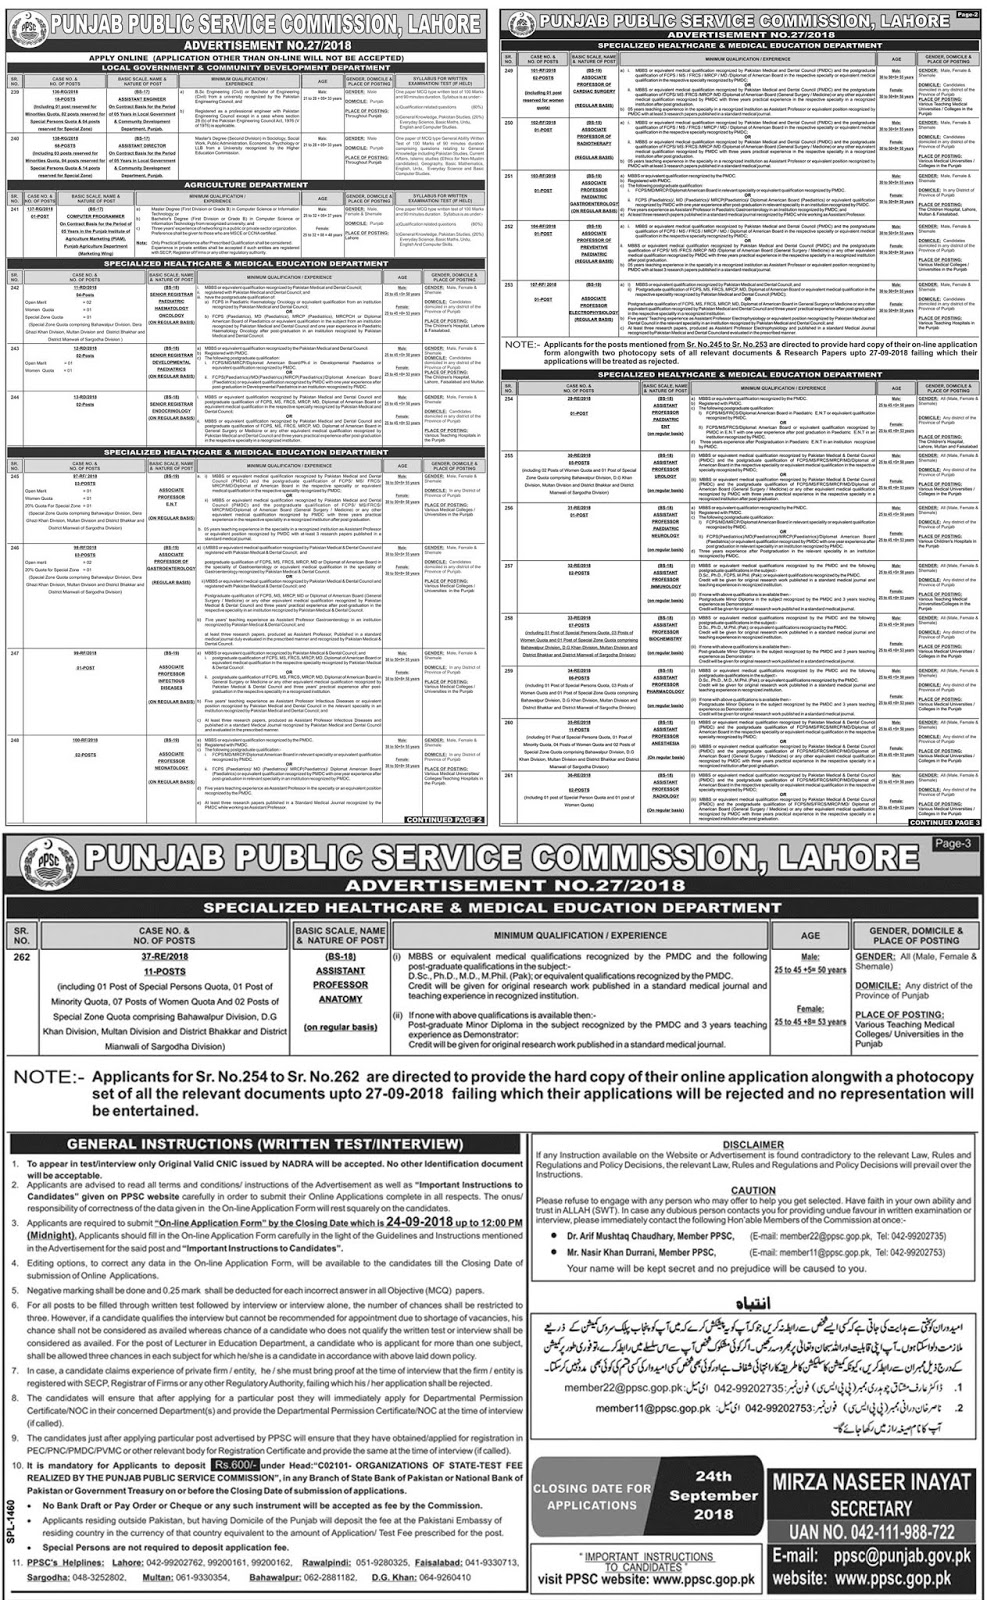 Latest Vacancies Announced in PPSC.GOP.PK Punjab Public Service Commission PPSC 9 September 2018